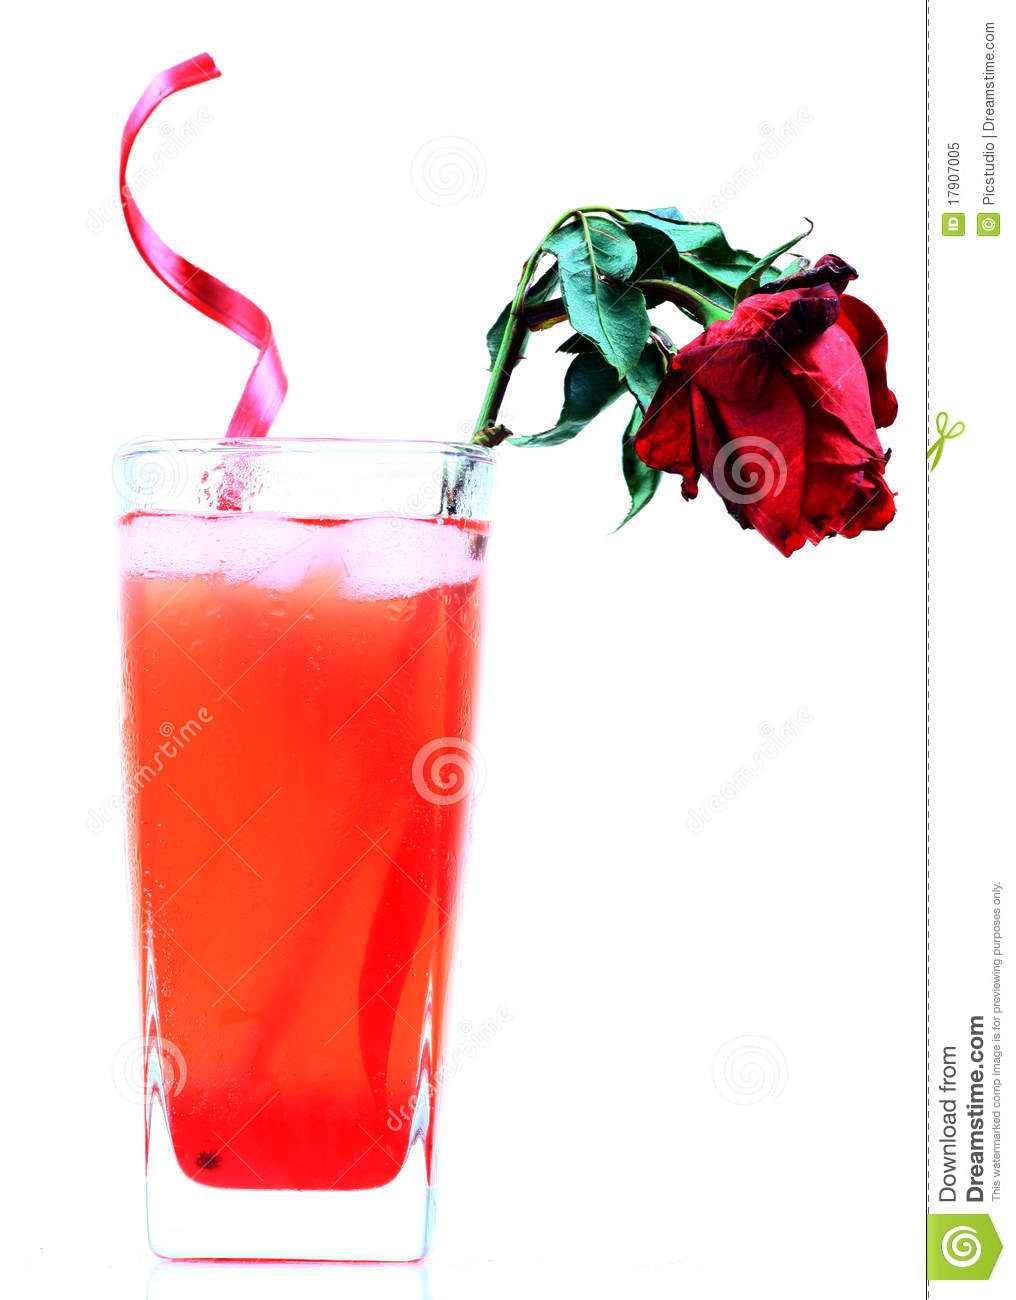 Cool Rose Drink Royalty Free Stock Photo - Image: 17907005